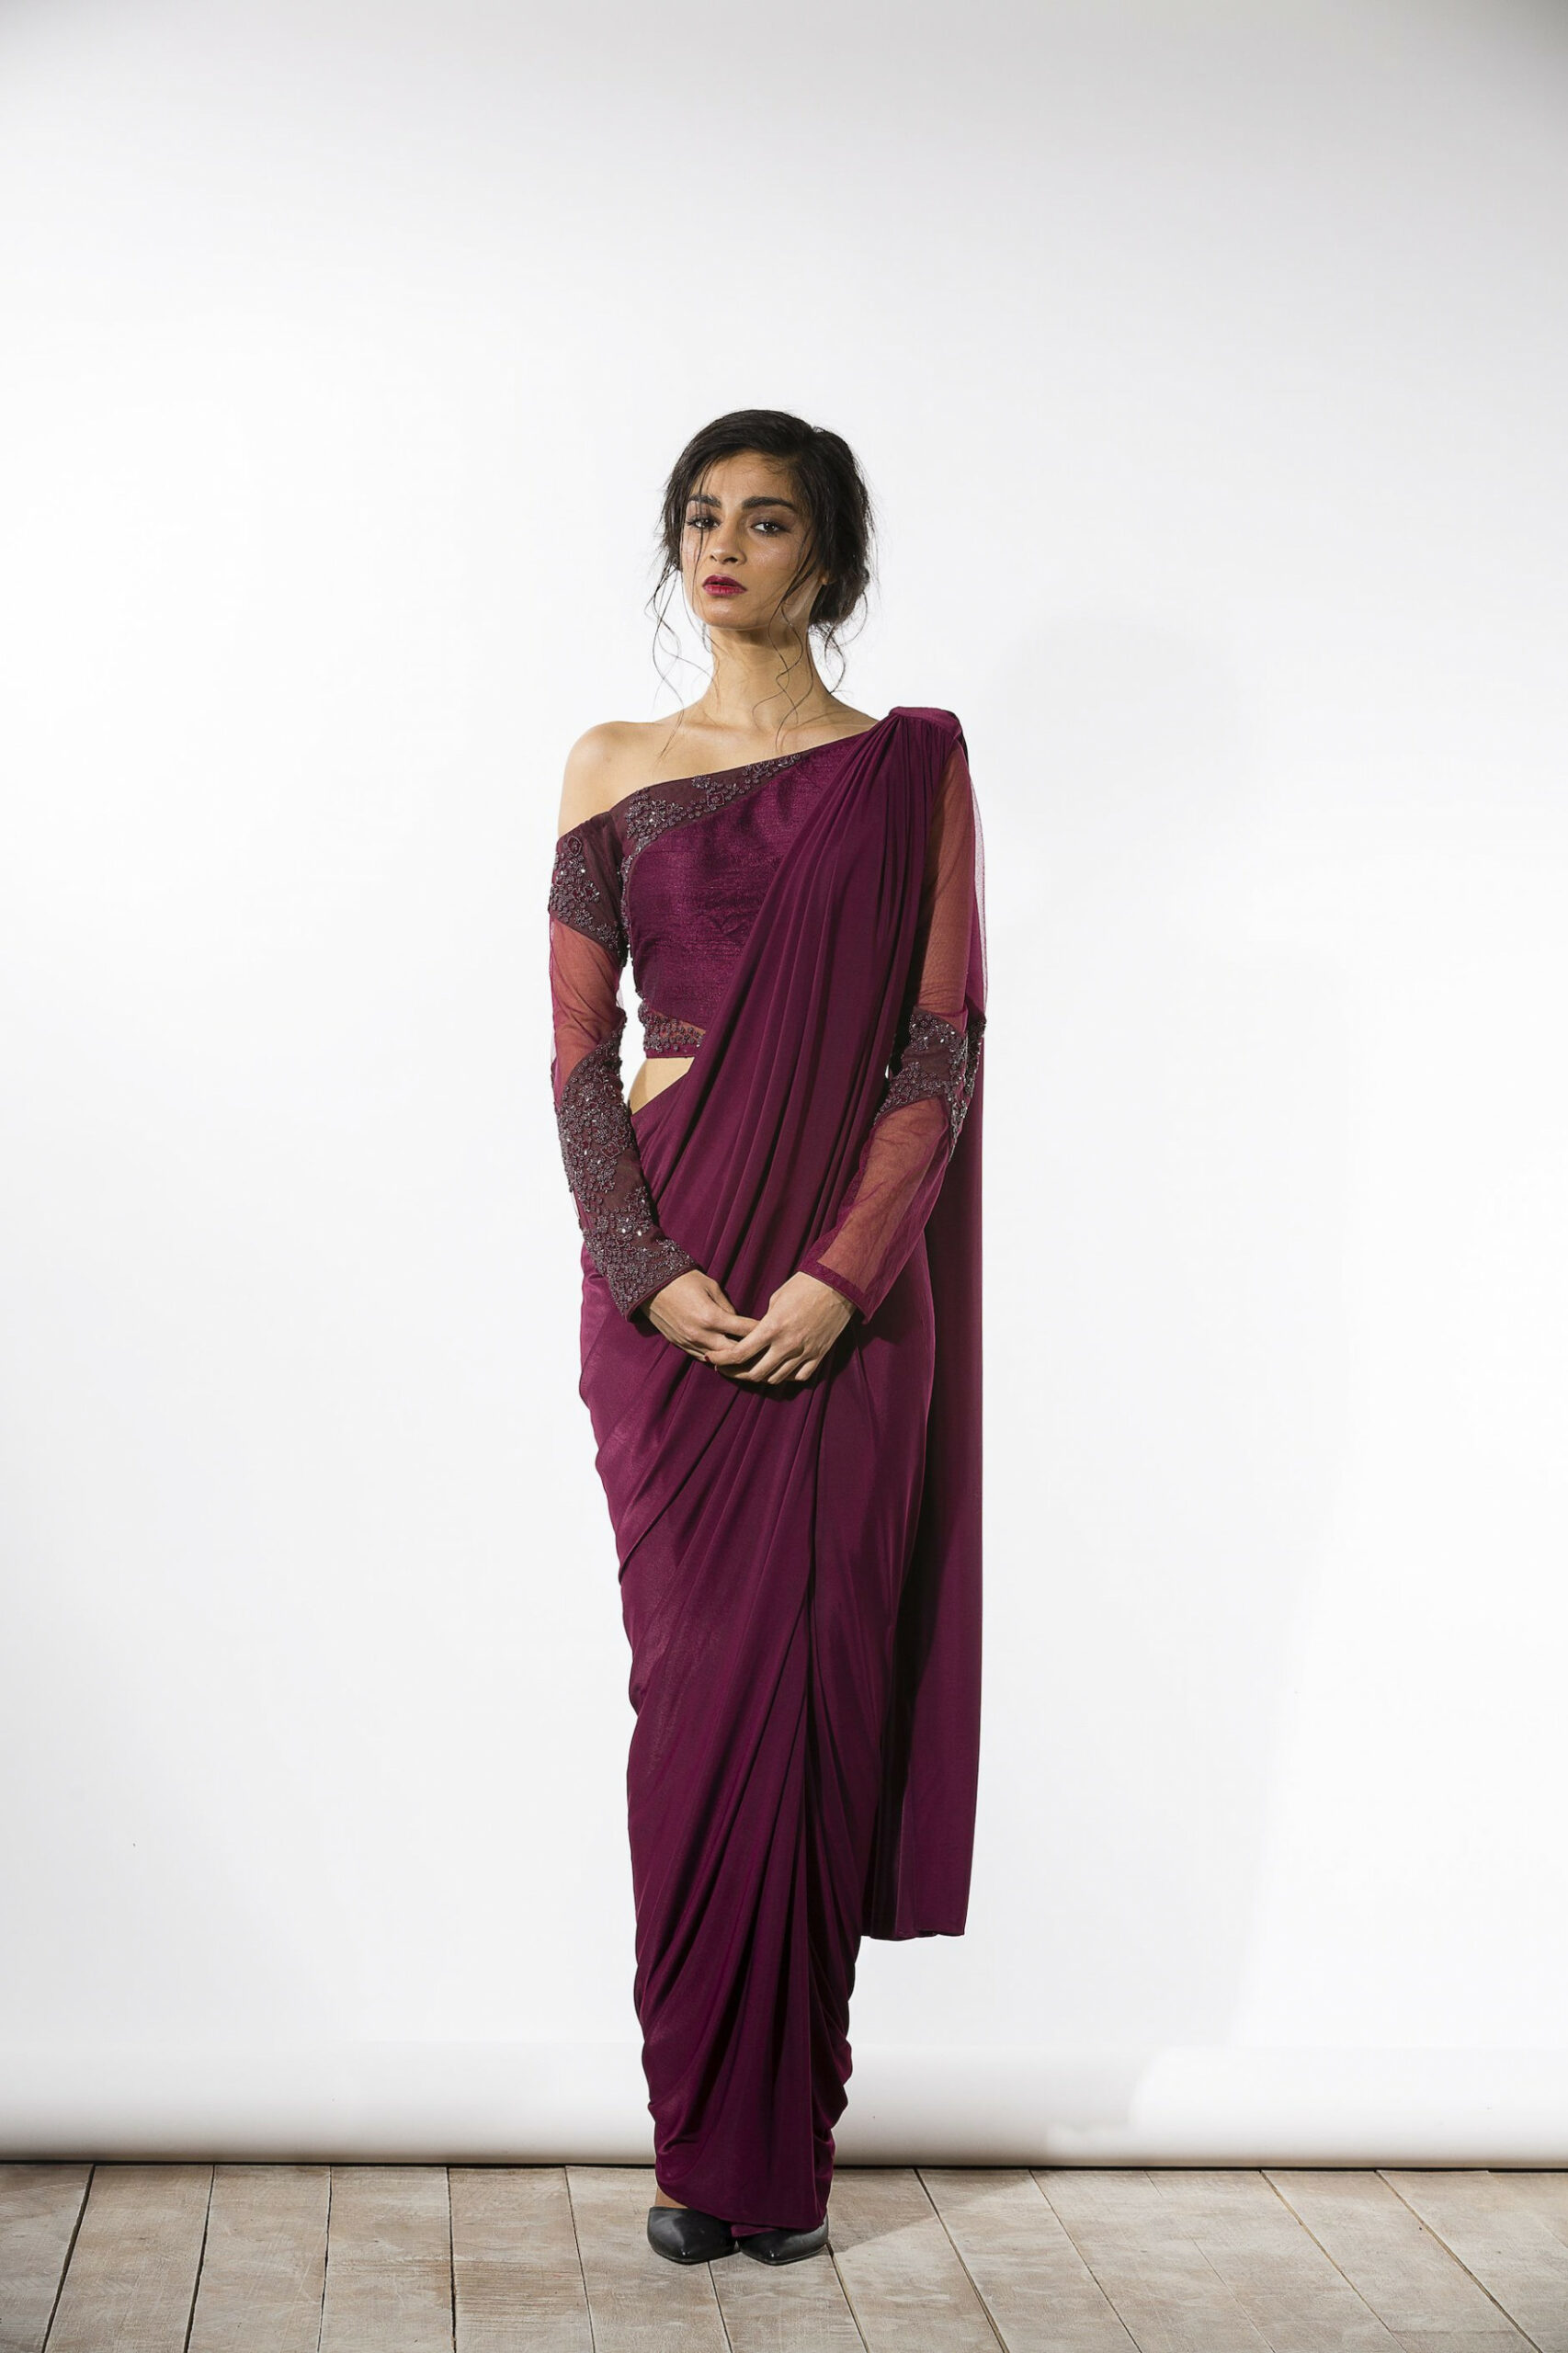 Elegant Saree Drape and off-shoulder choli blouse